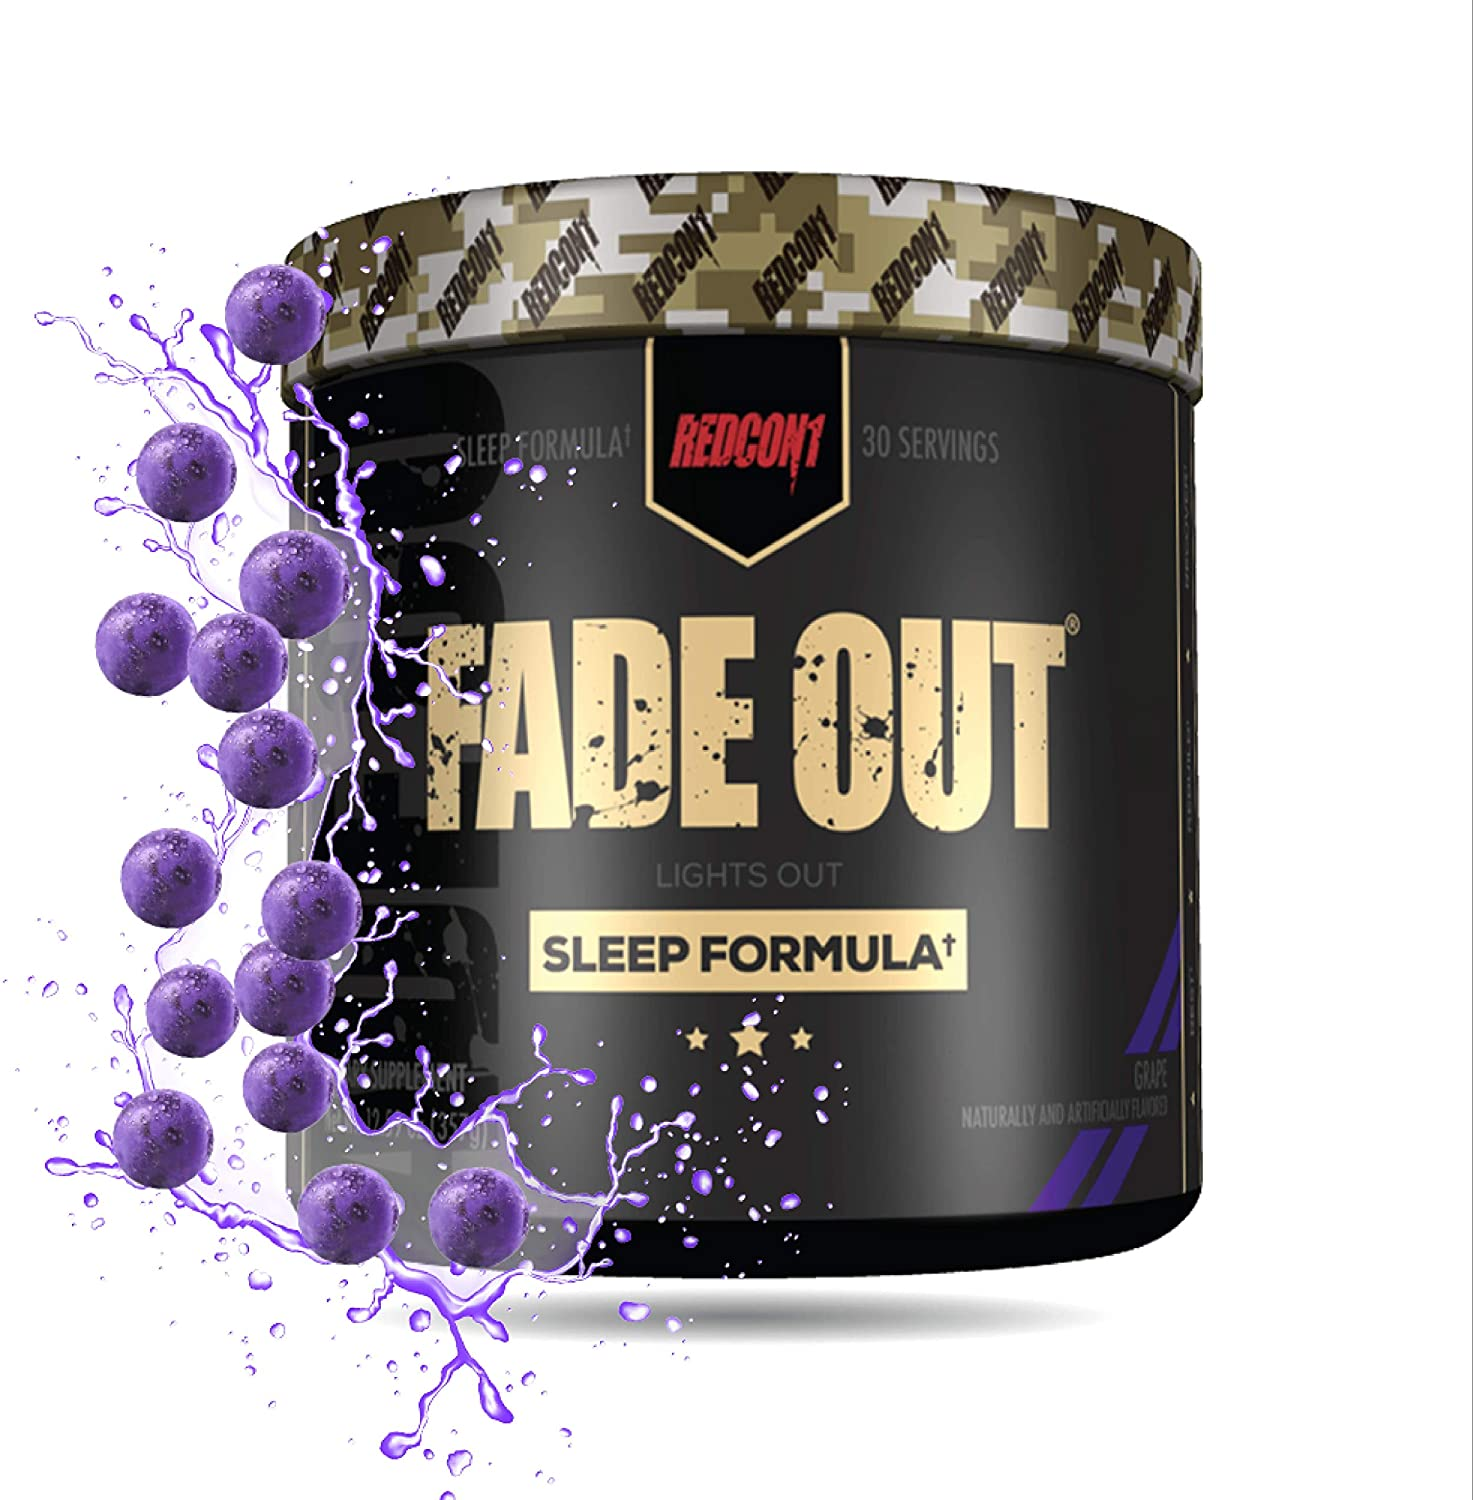 Redcon1 Fade Out Sleep Formula Review: Can It Improve Sleep?